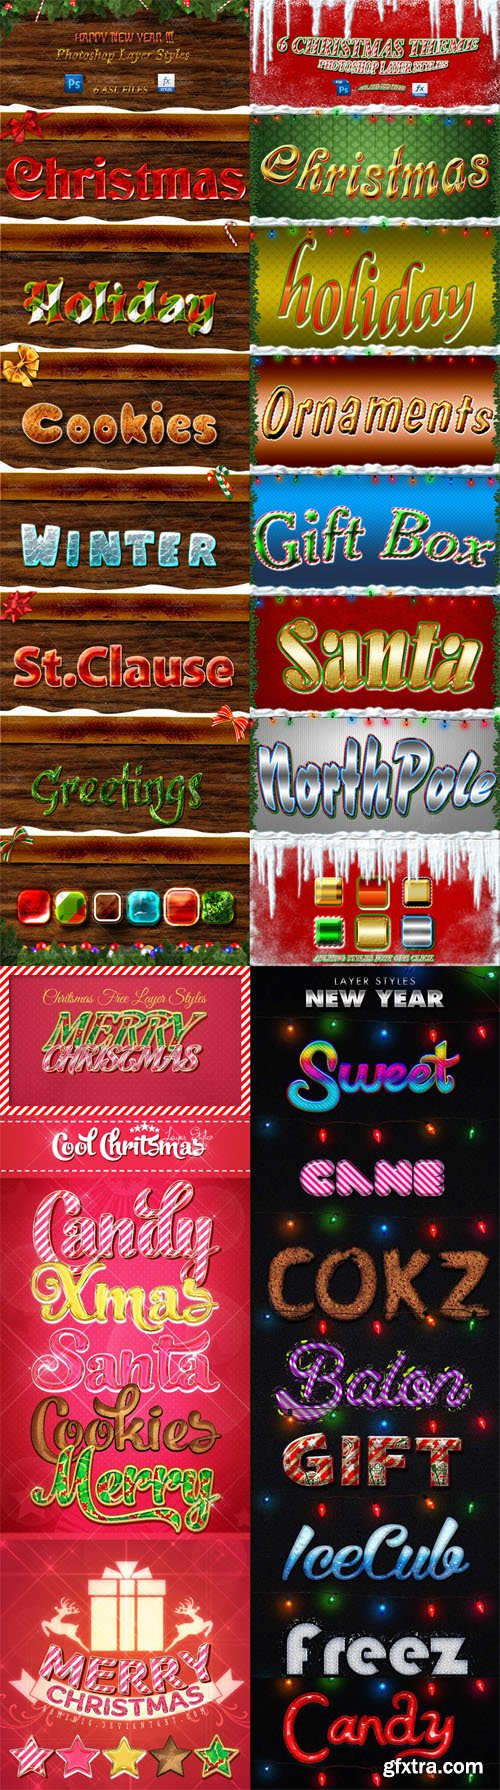 Holiday & Christmas Photoshop Layer Styles Pack 1